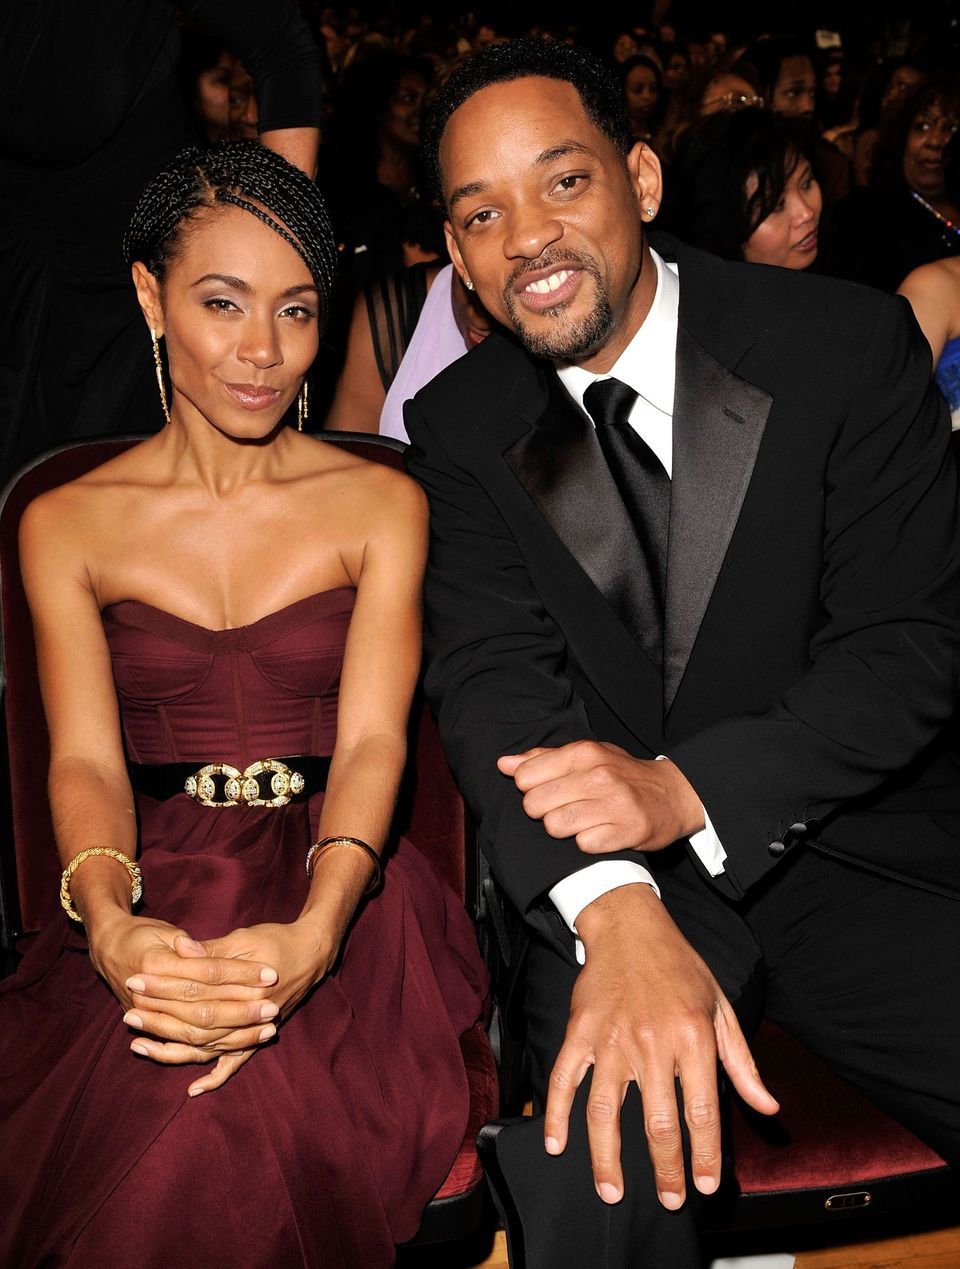 Jada Pinkett Smith & Will Smith at the 40th NAACP Image Awards on February 12, 2009 in California | Photo: Getty Images